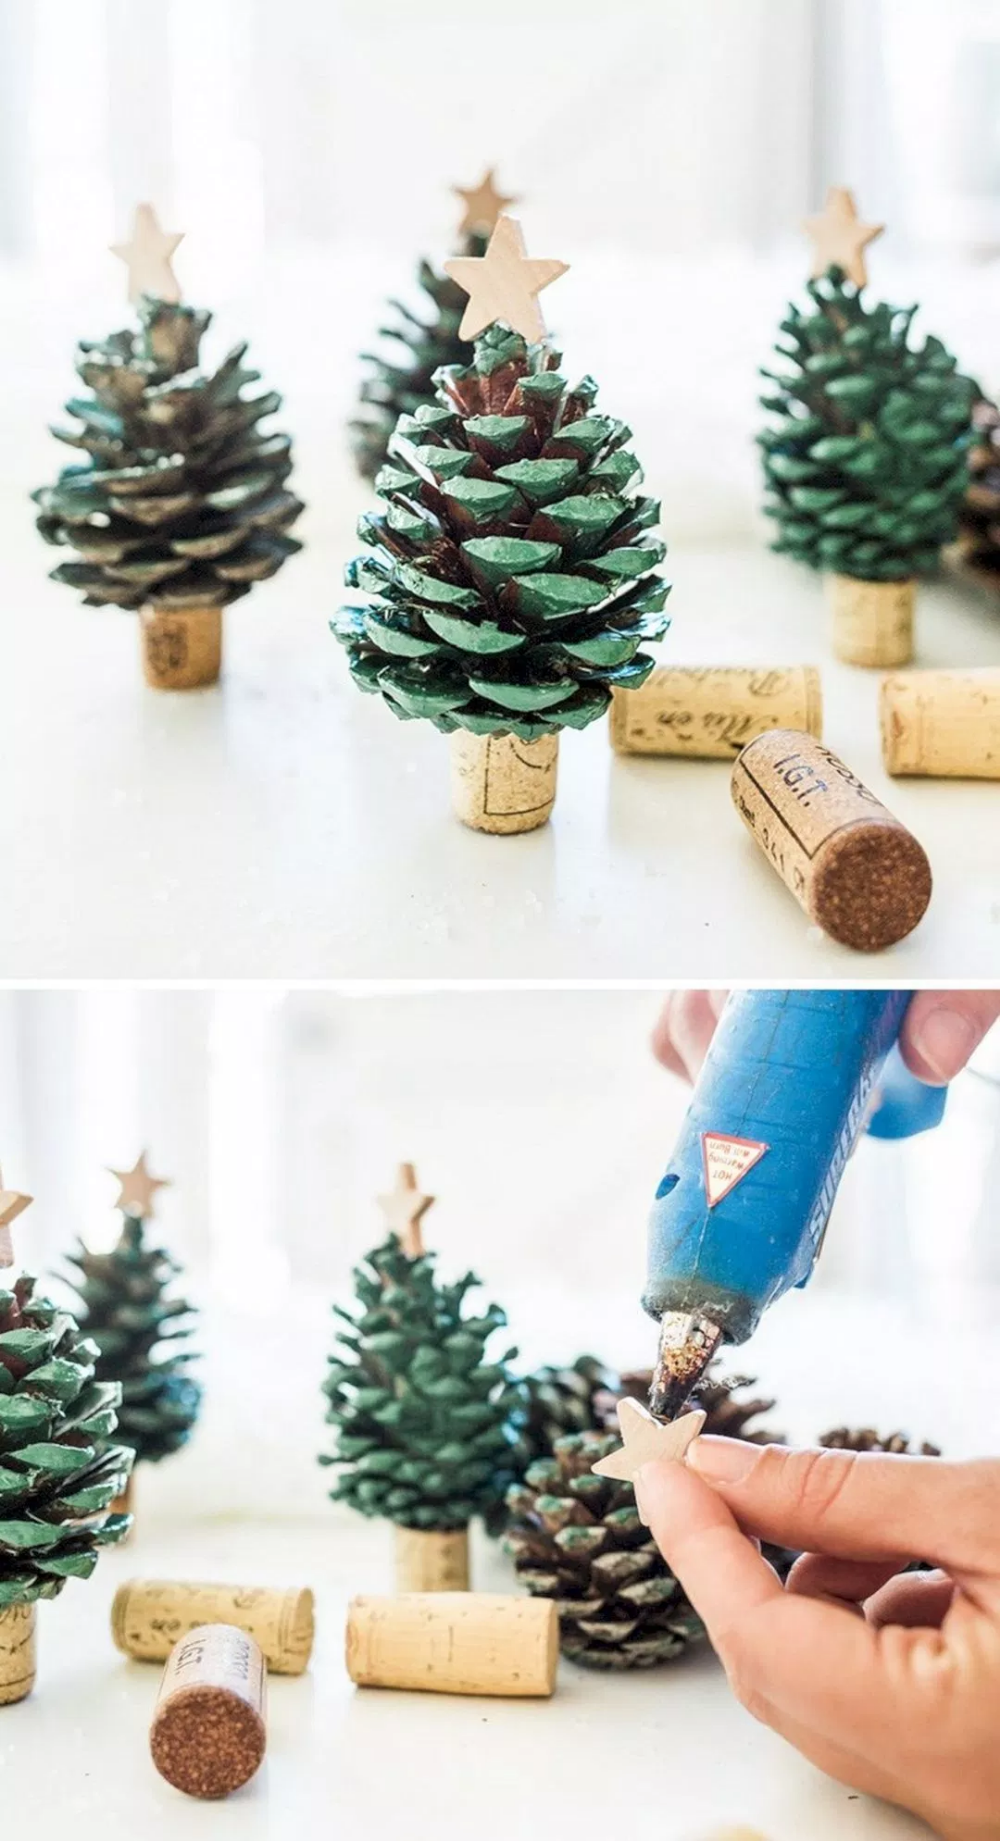 40+ Wine cork crafts to sell ideas